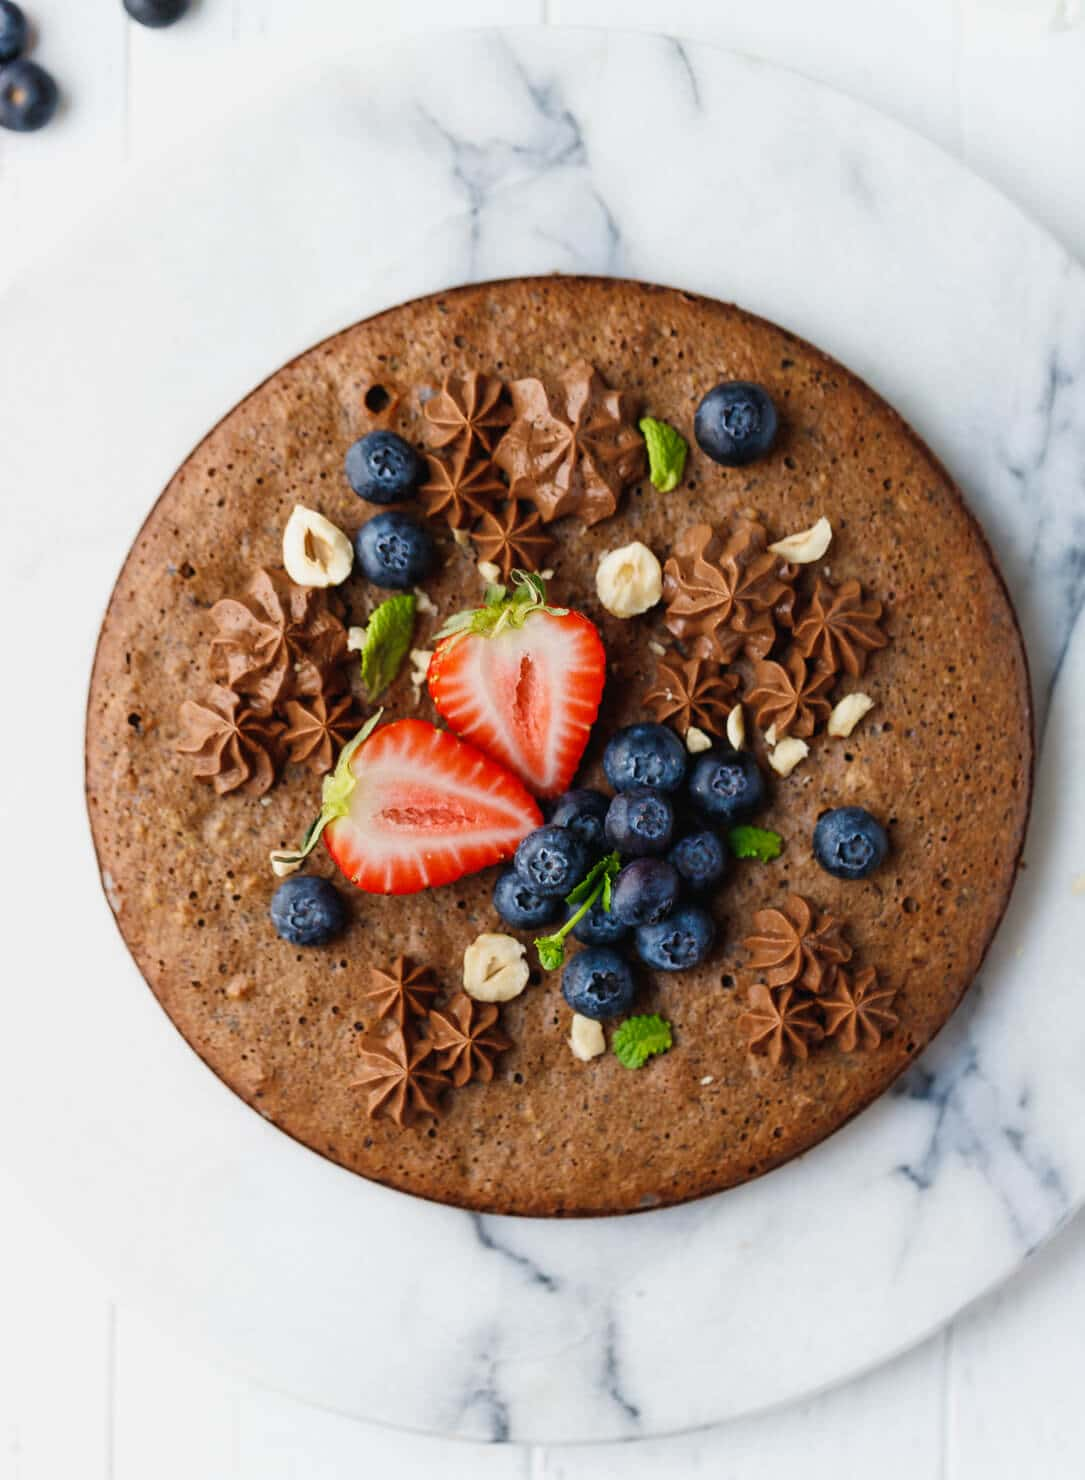 Sugar-Free, Low-Carb Chocolate Hazelnut Cake recipe that makes a soft and nutty, chocolatey cake that tastes amazing and requires just four simple ingredients.